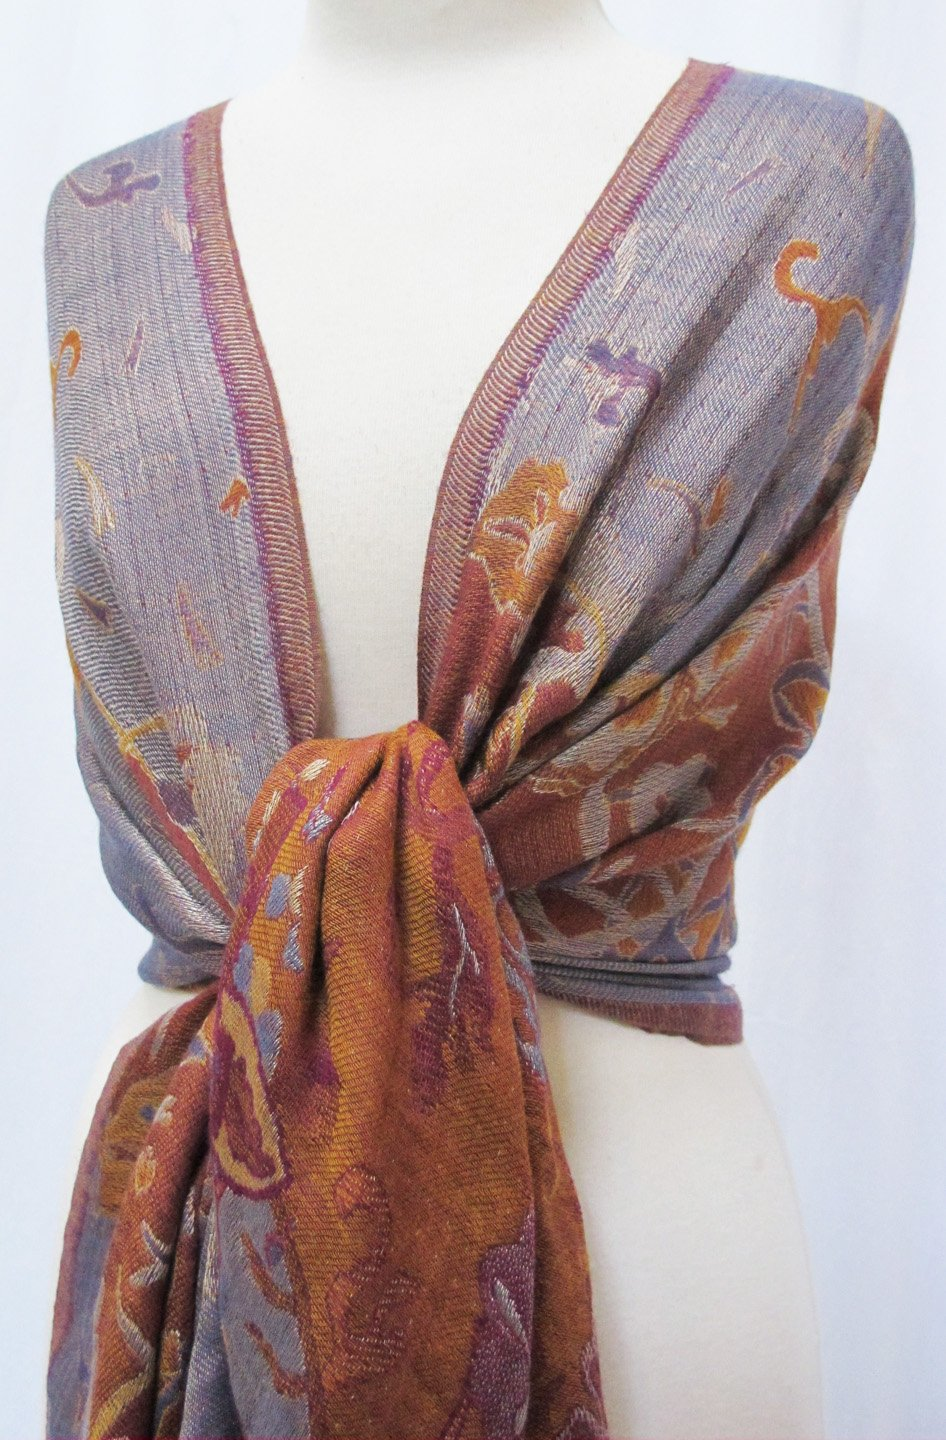 ''Misty Floral'' Silk Merino Wool Shawl Stole Scarf Wrap Purple Copper by Ashiana (Image #3)